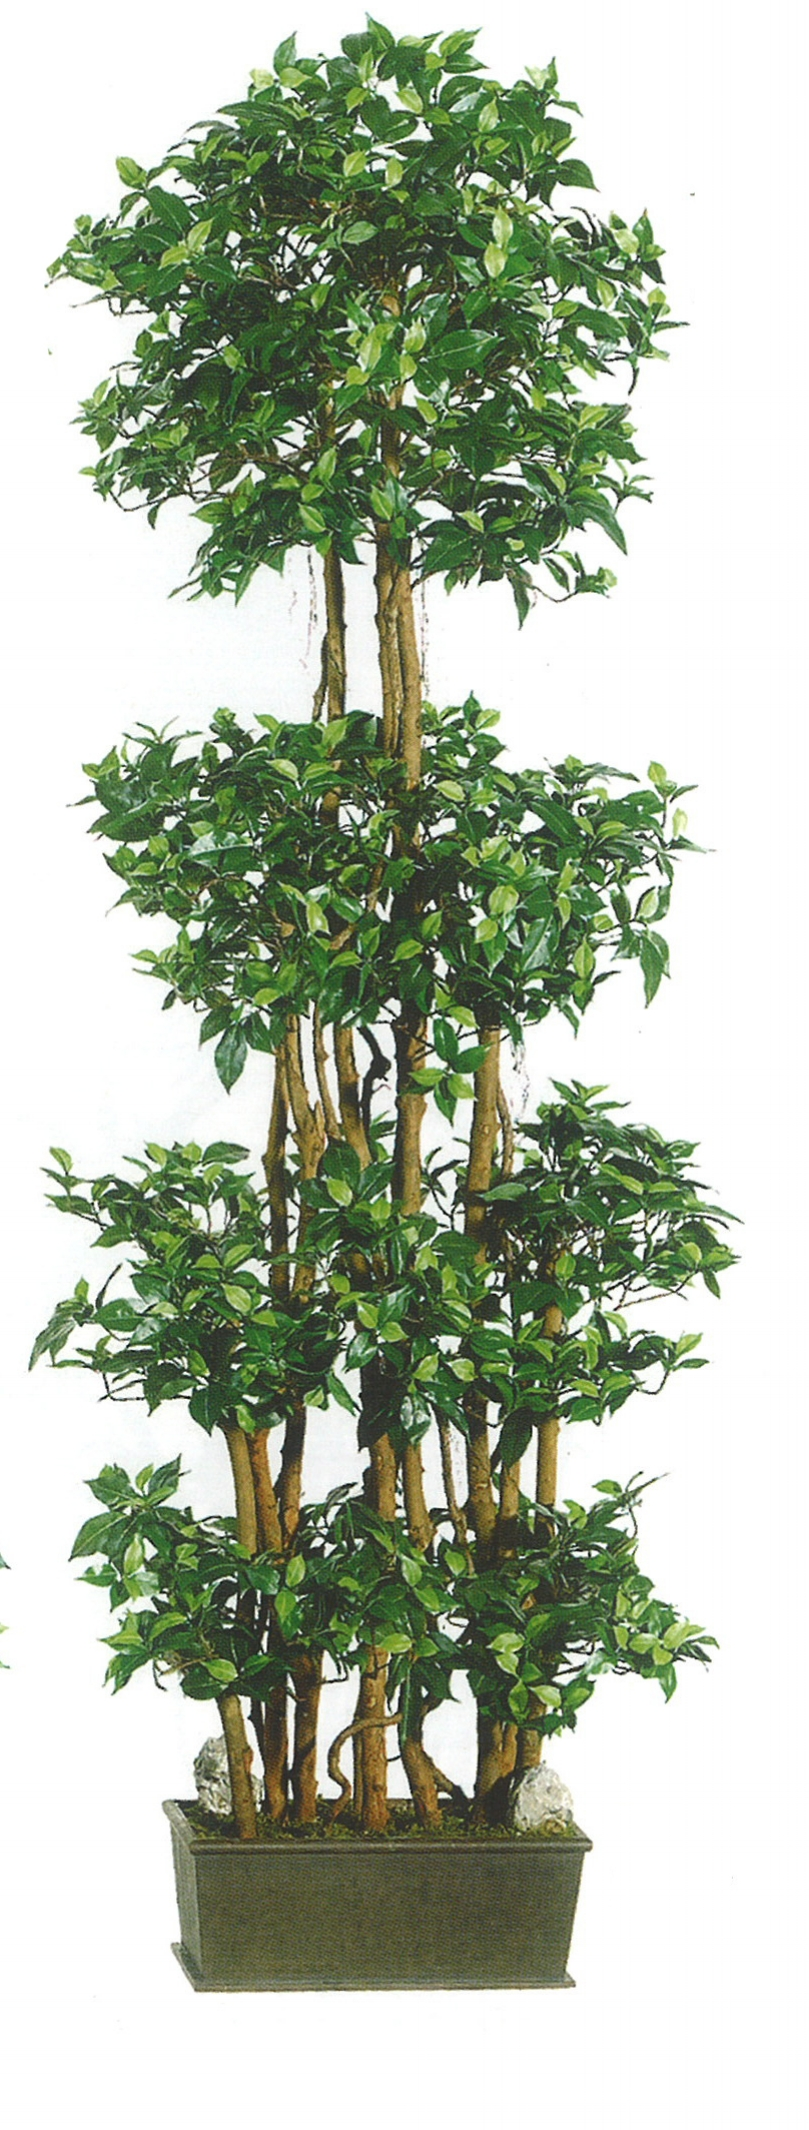 TSP 4524- Ficus panel tree